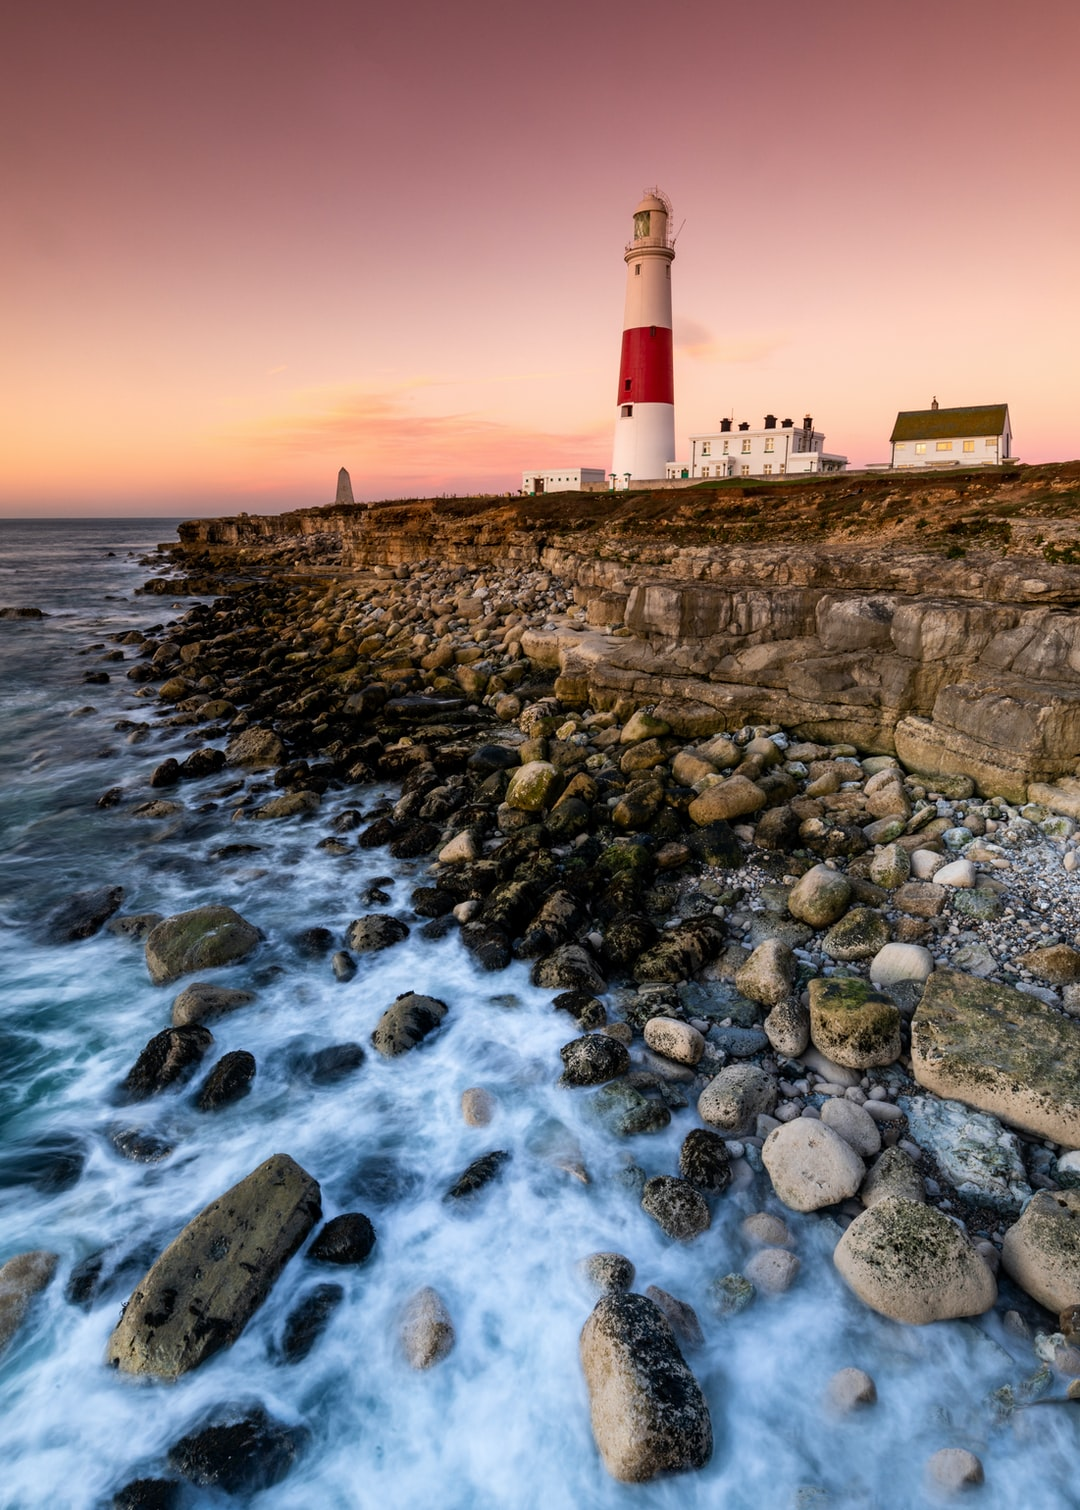 Sunrise at Portland Bill in October this year… the sunrise to the east had no cloud and not much colour, but then I looked behind me and saw these beautiful purple and pink tones, and instantly ran to the other side of Portland to capture this image